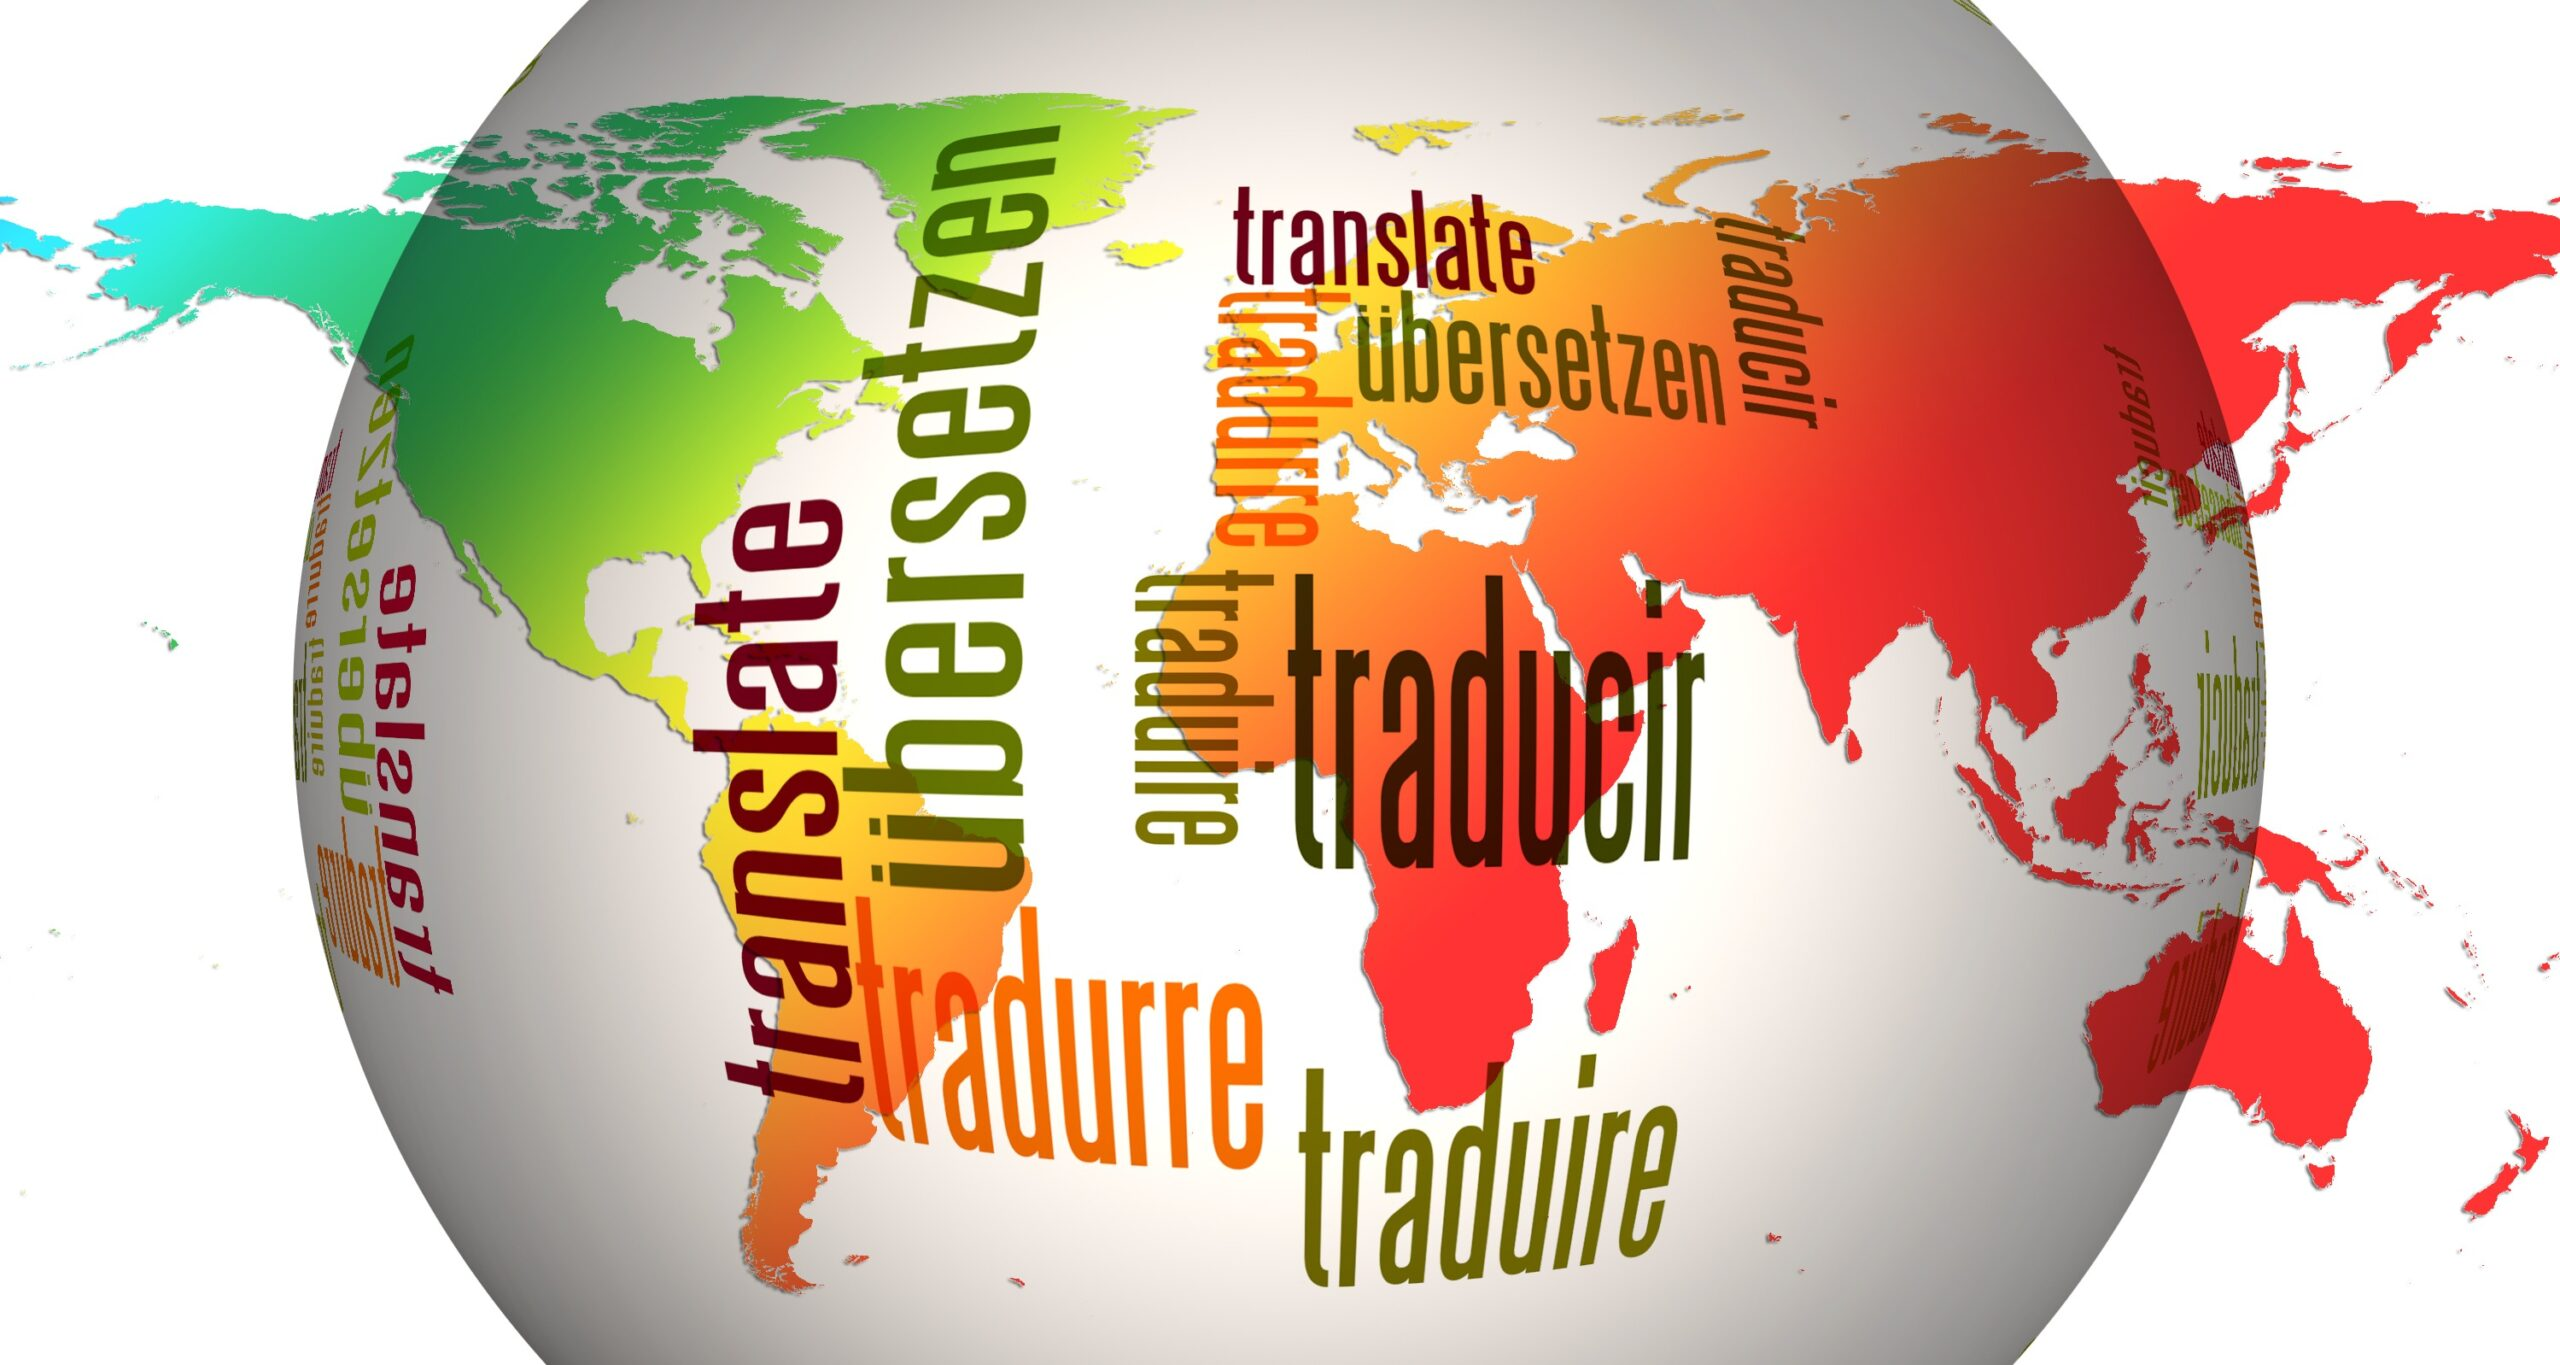 Translation, Localization, and Transcreation – Which Is The Best?